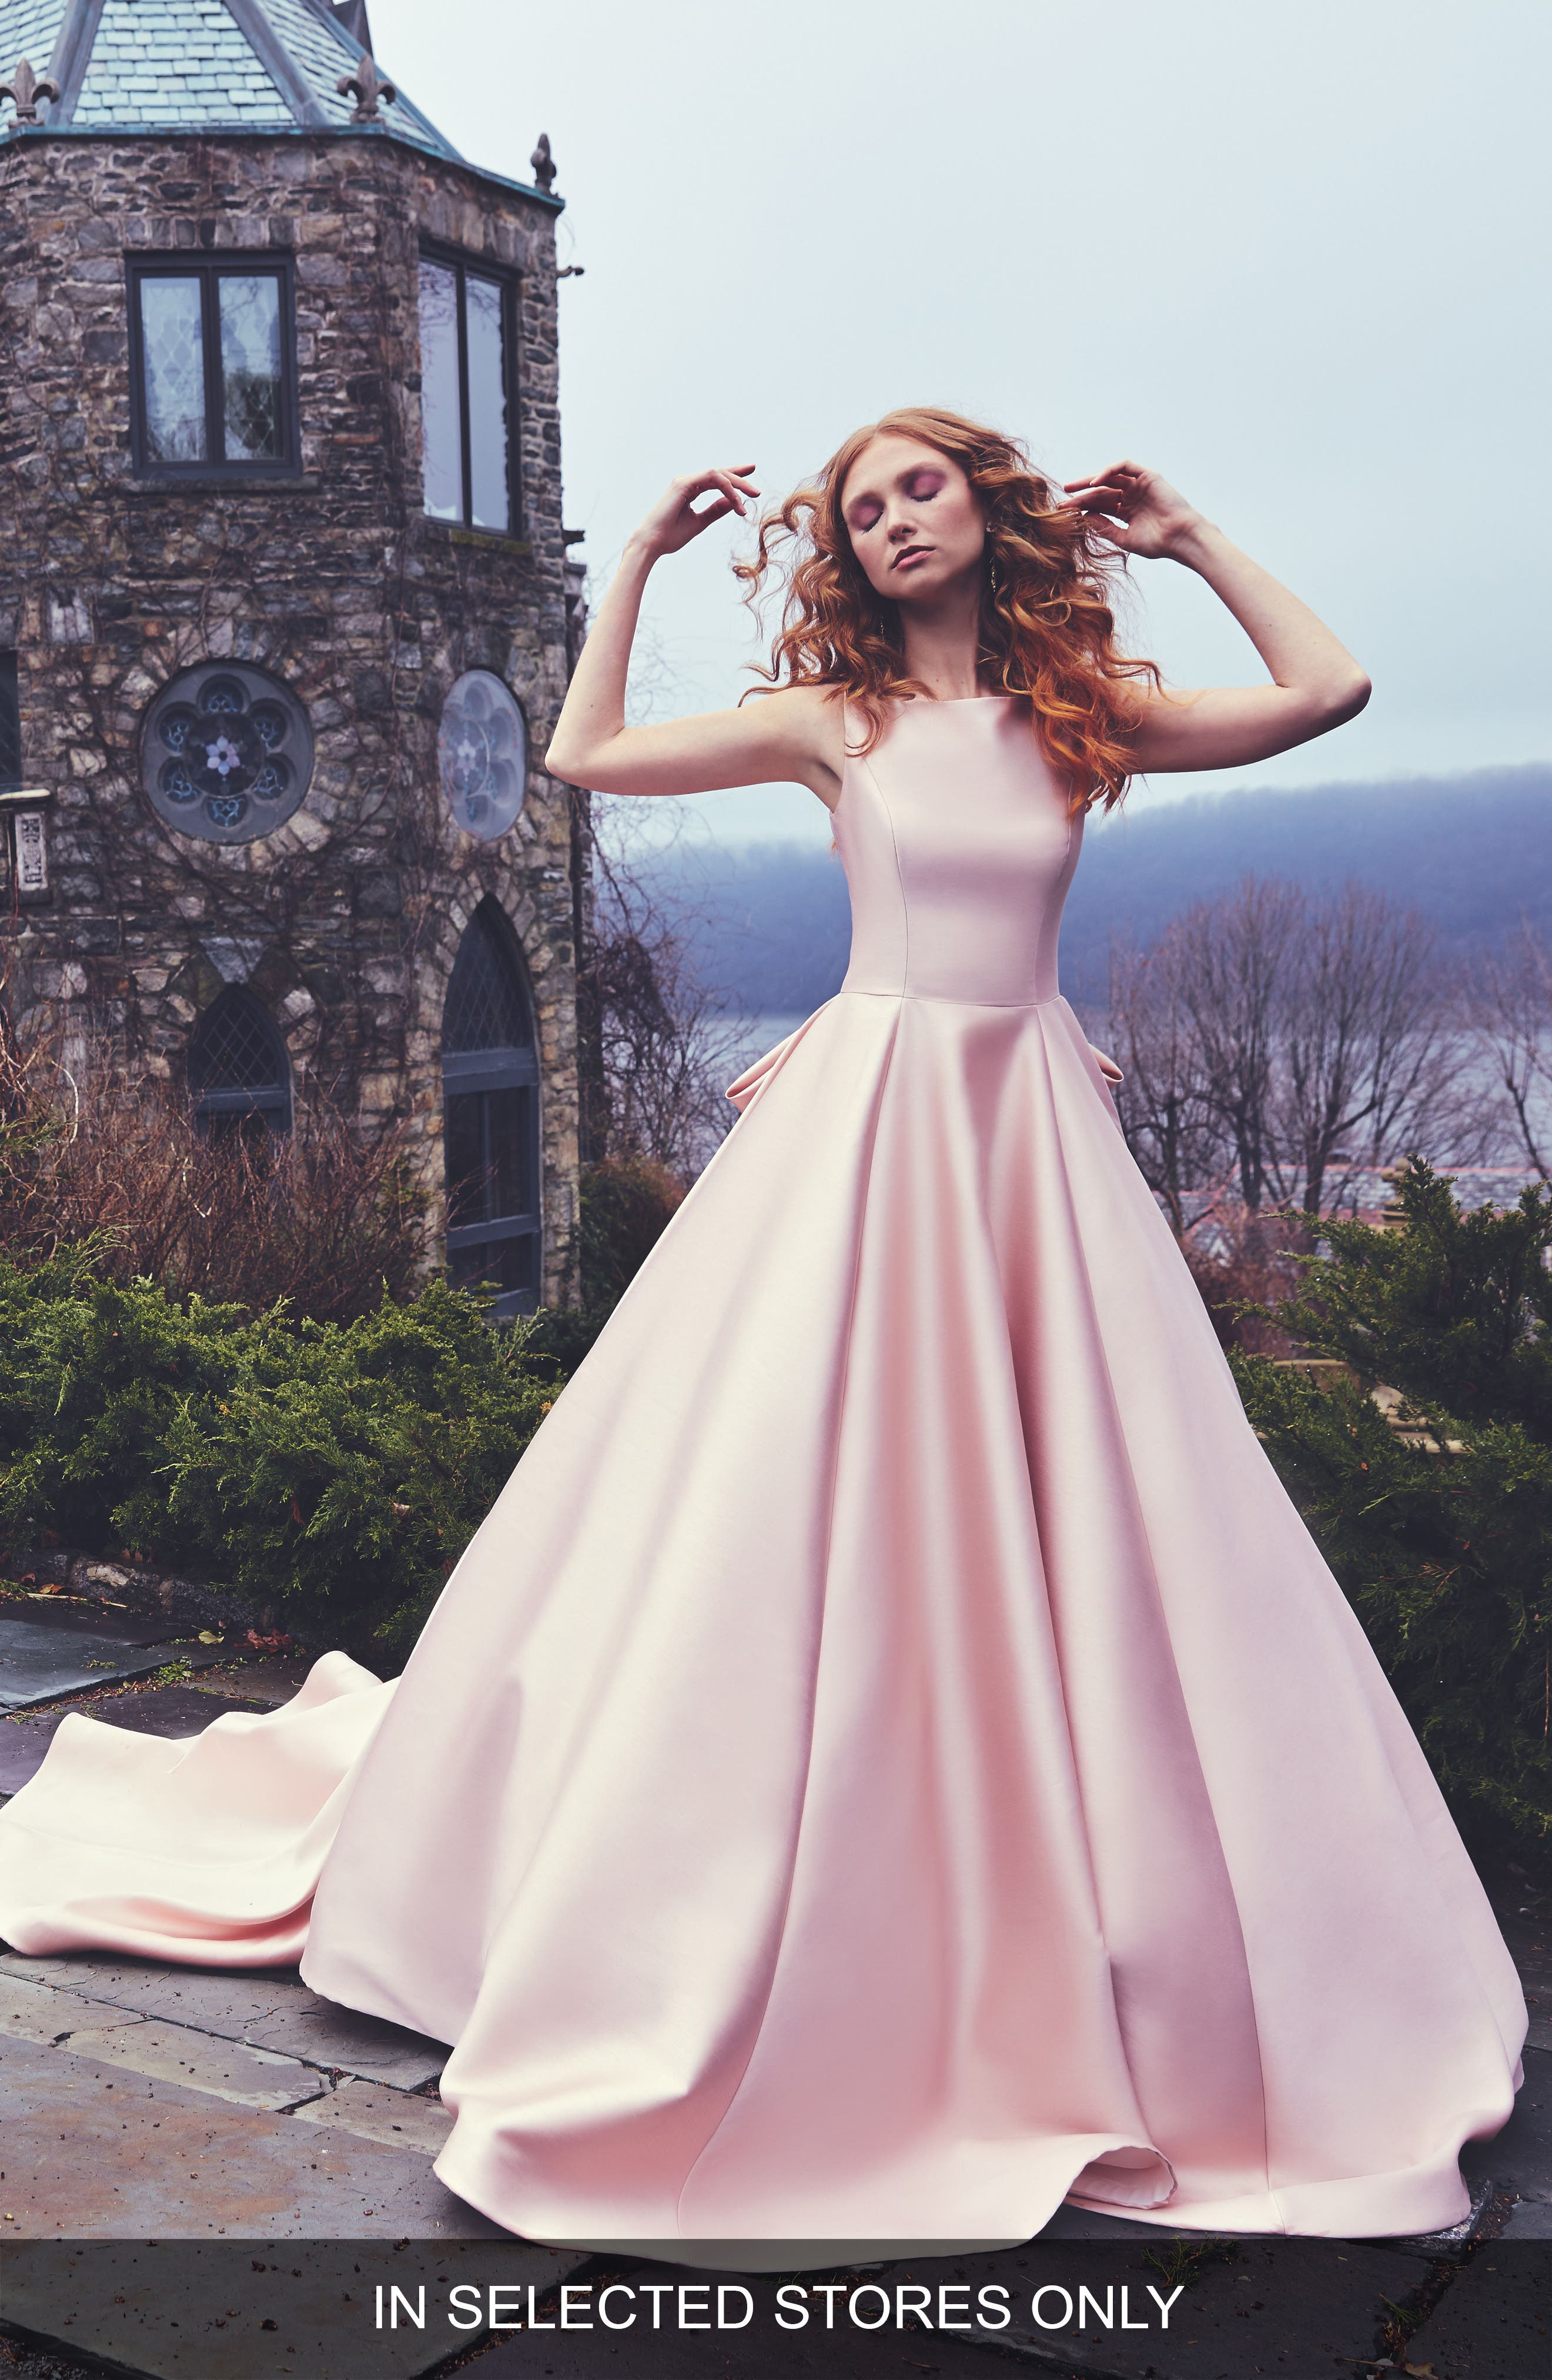 Brooklyn Bateau Neck Ballgown with Cathedral Train,                             Main thumbnail 1, color,                             Rose Pink